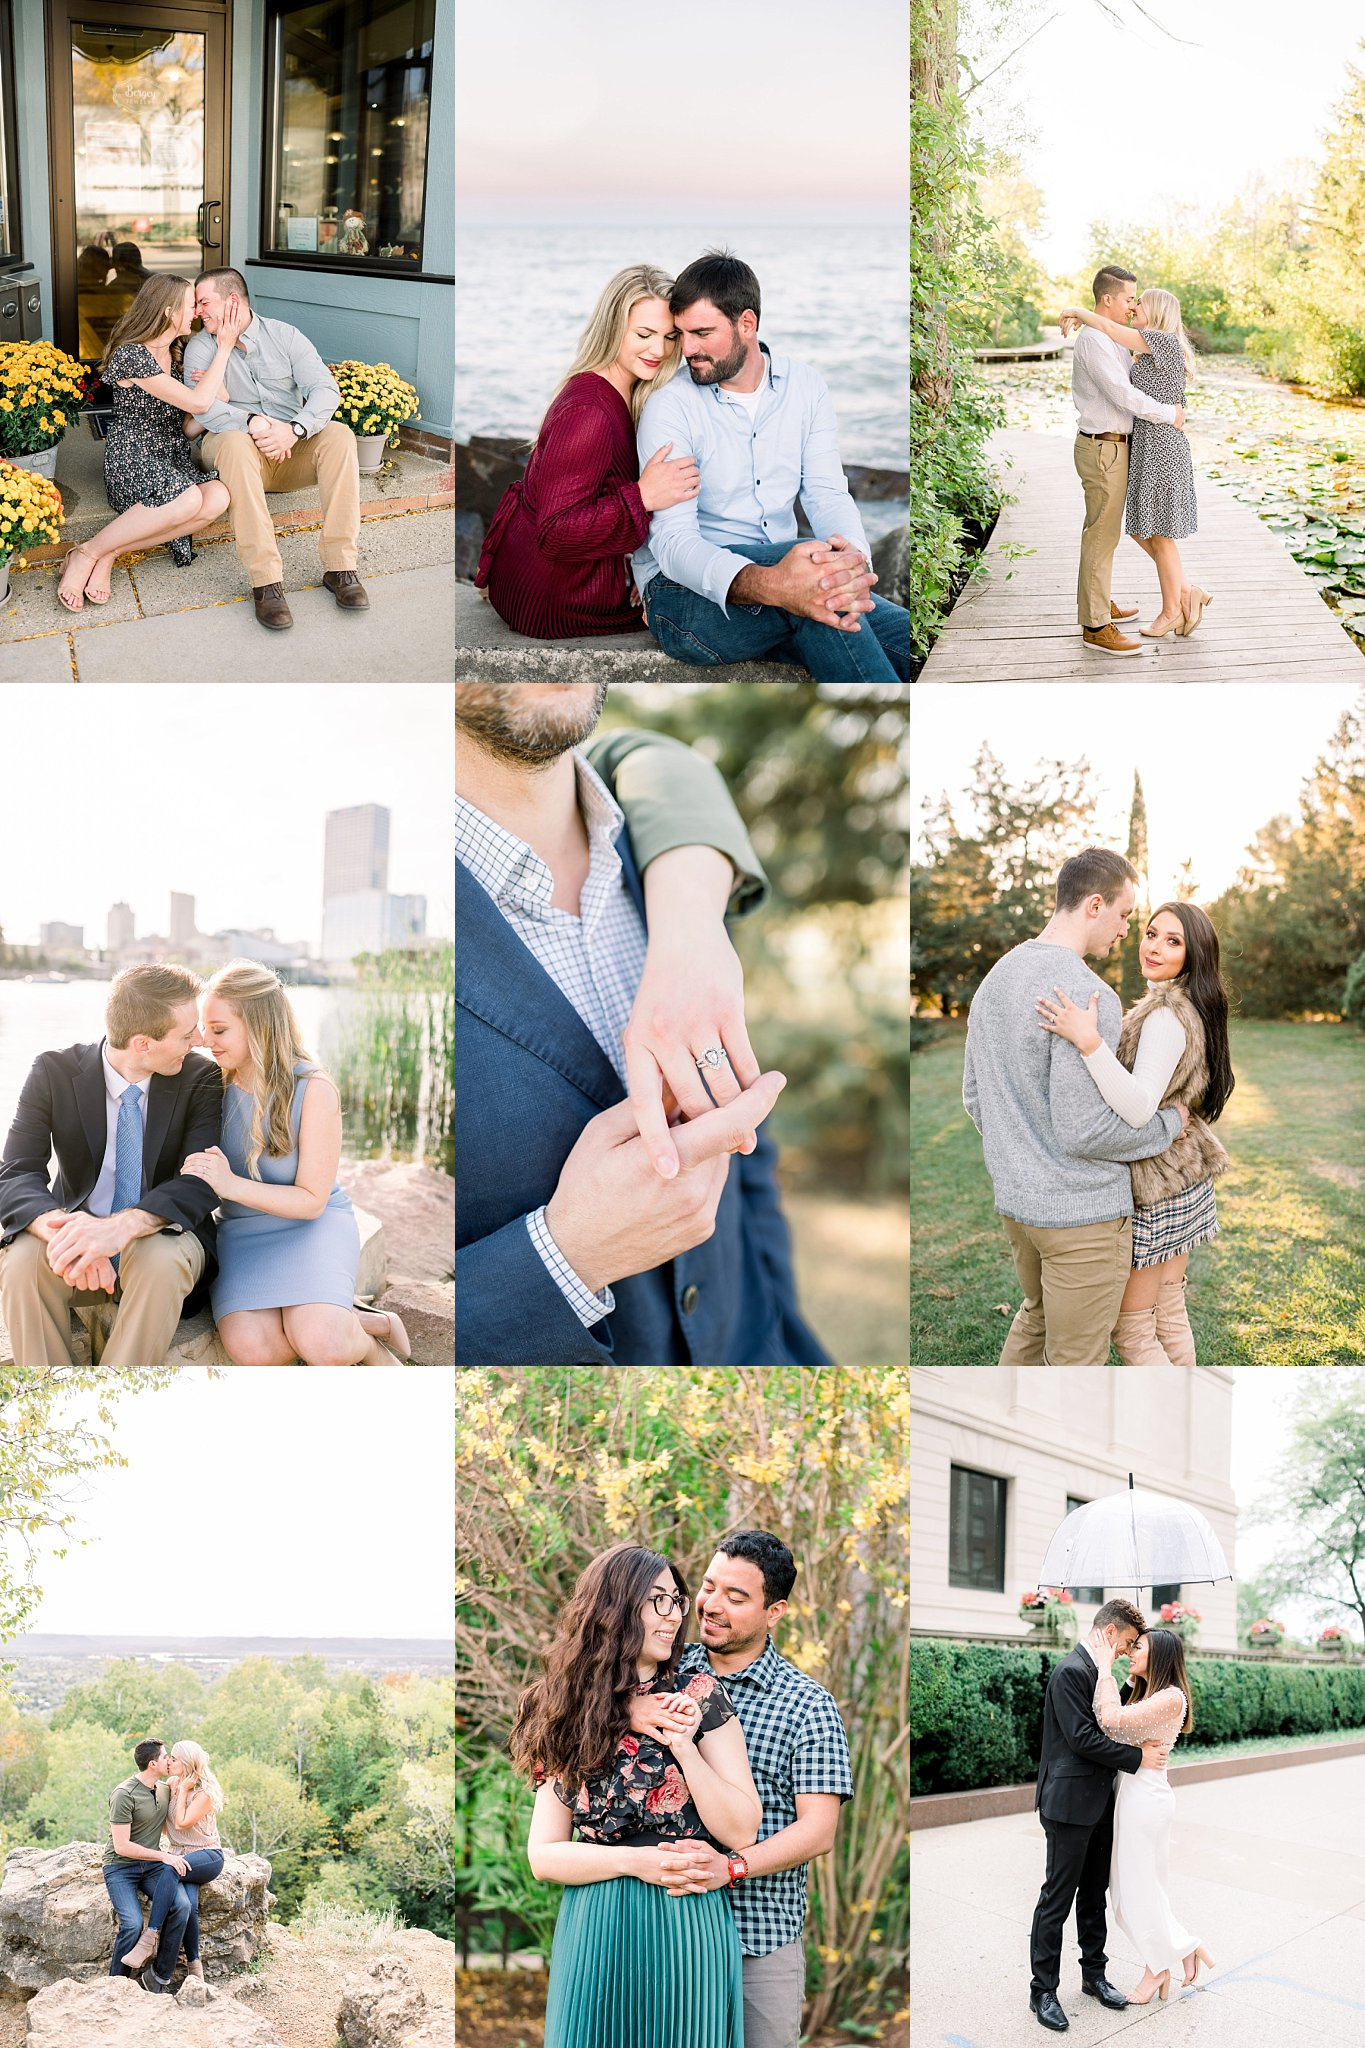 Wisconsin Engagement Session Ideas